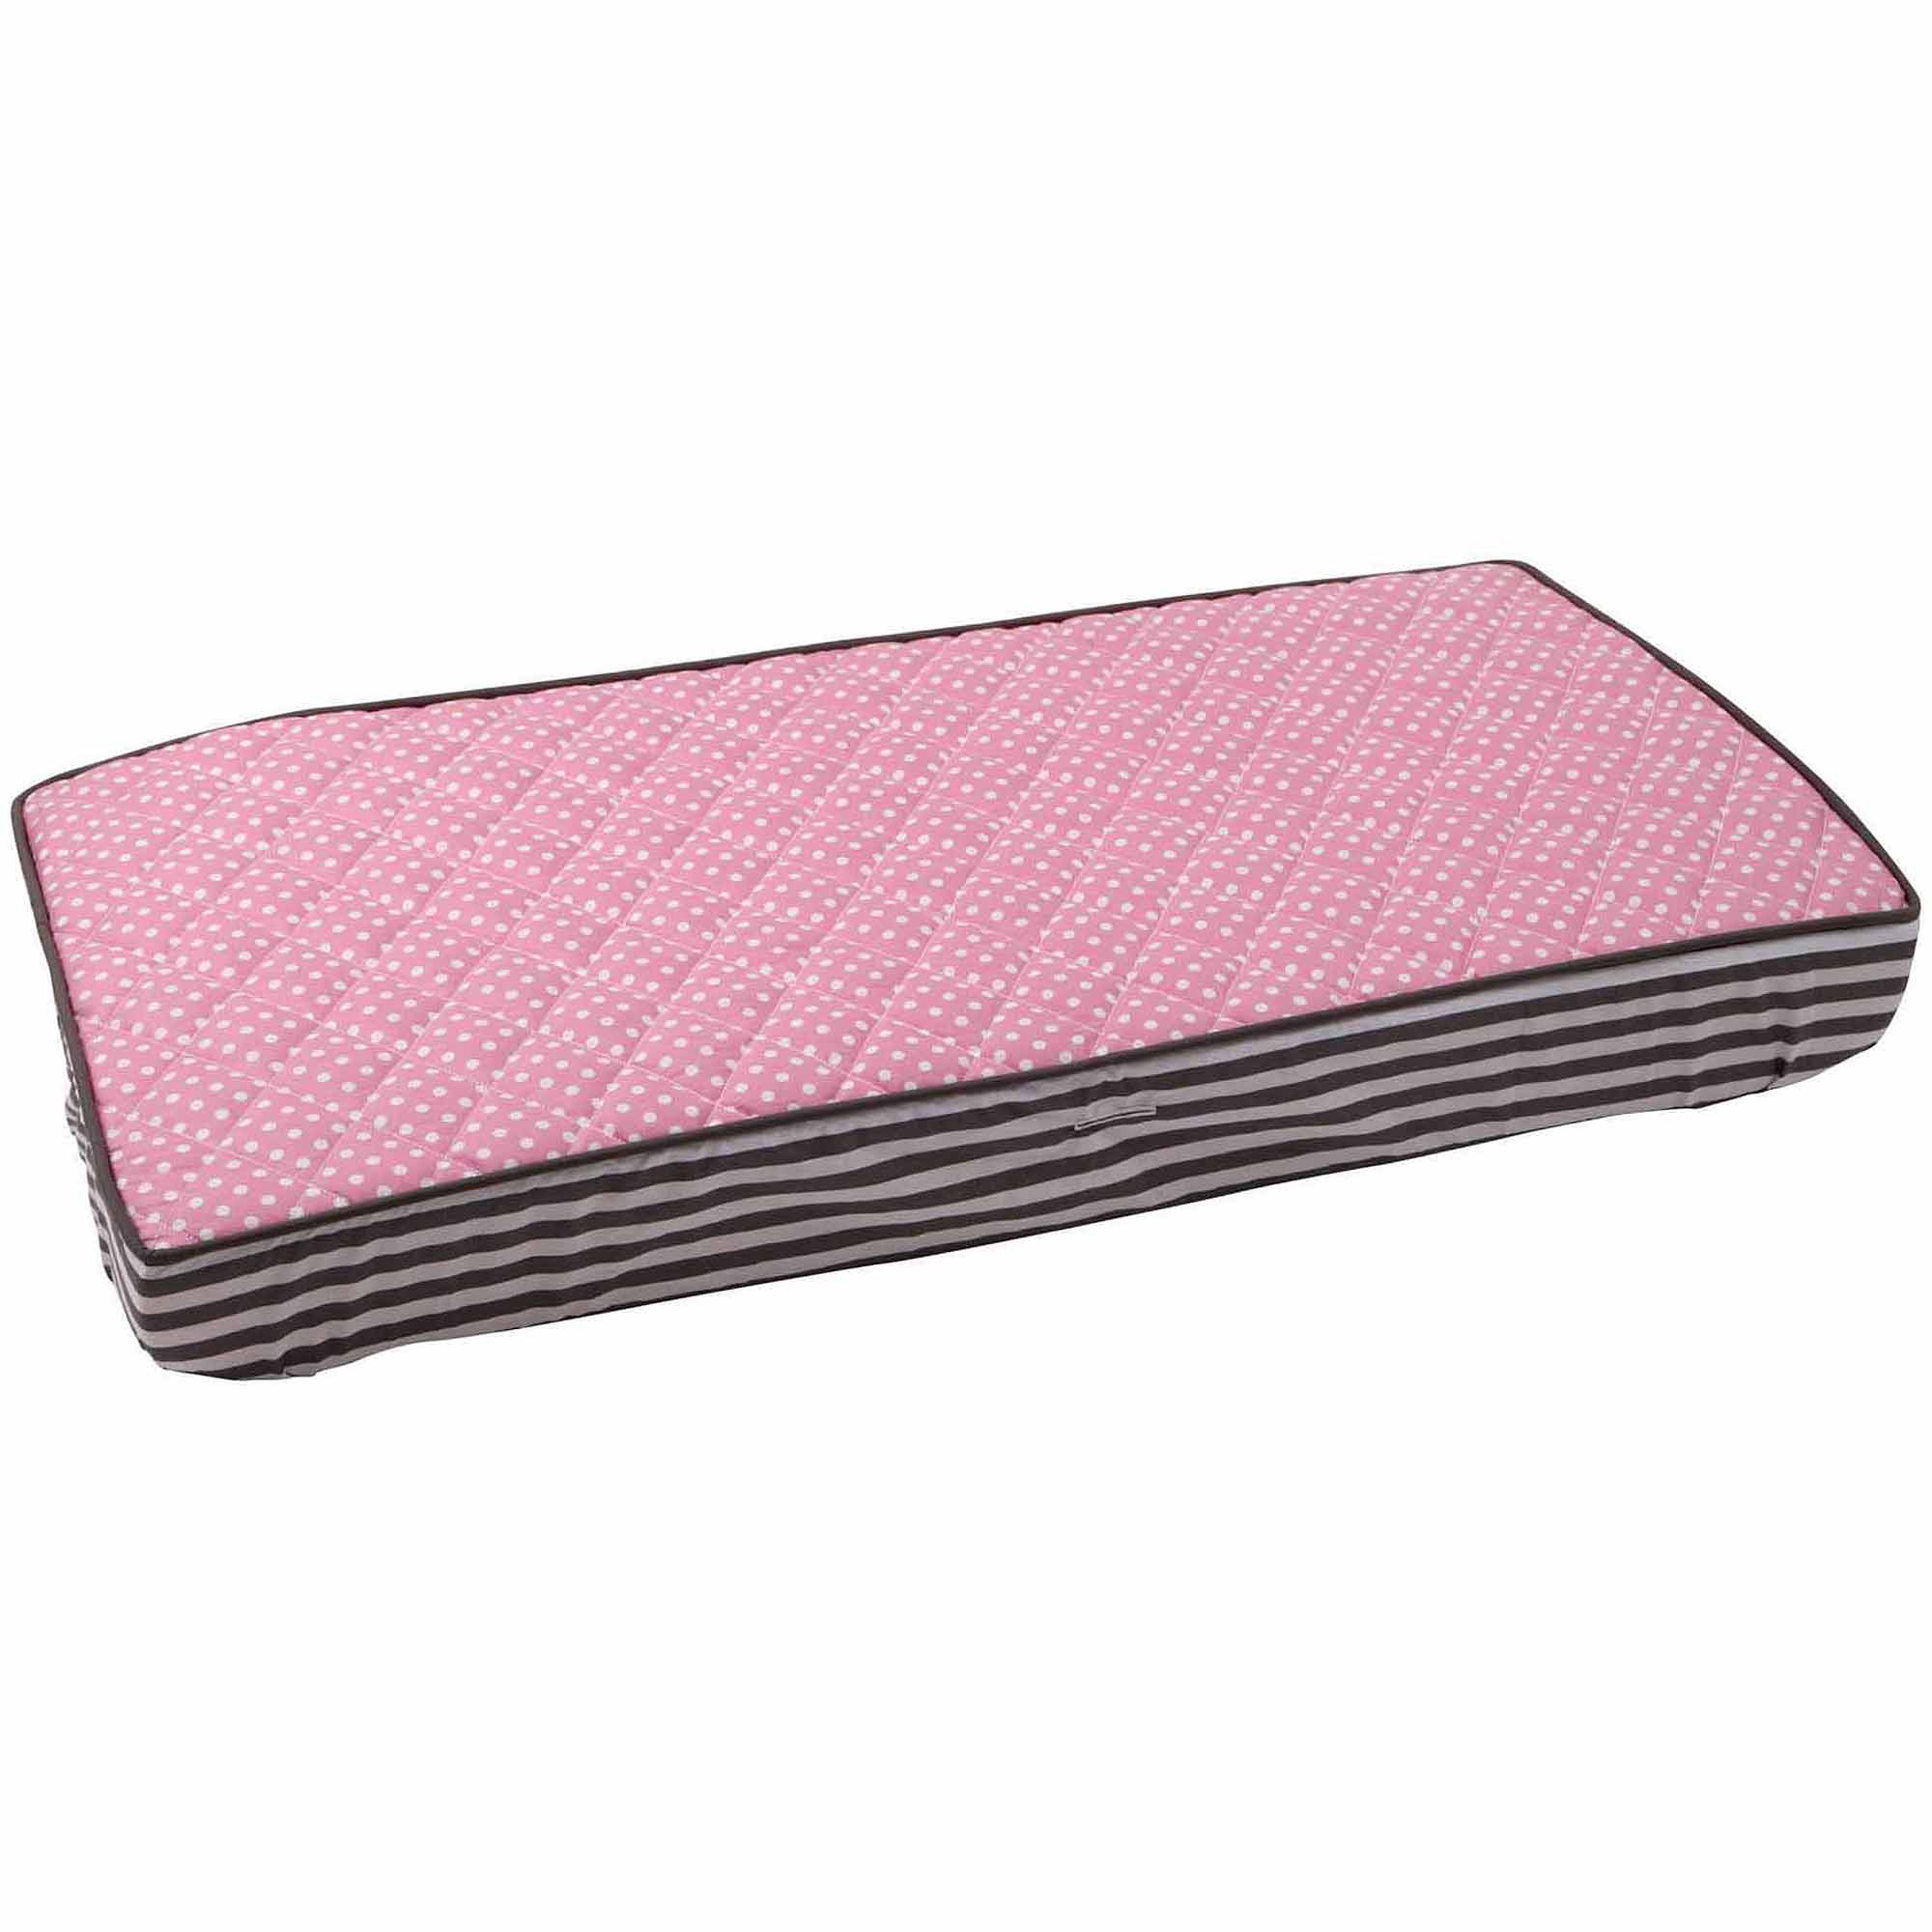 Bacati - Elephants Pin dots Quilted Top 100% Cotton Percale with Polyester Batting Diaper Changing Pad Cover, Pink/Gray